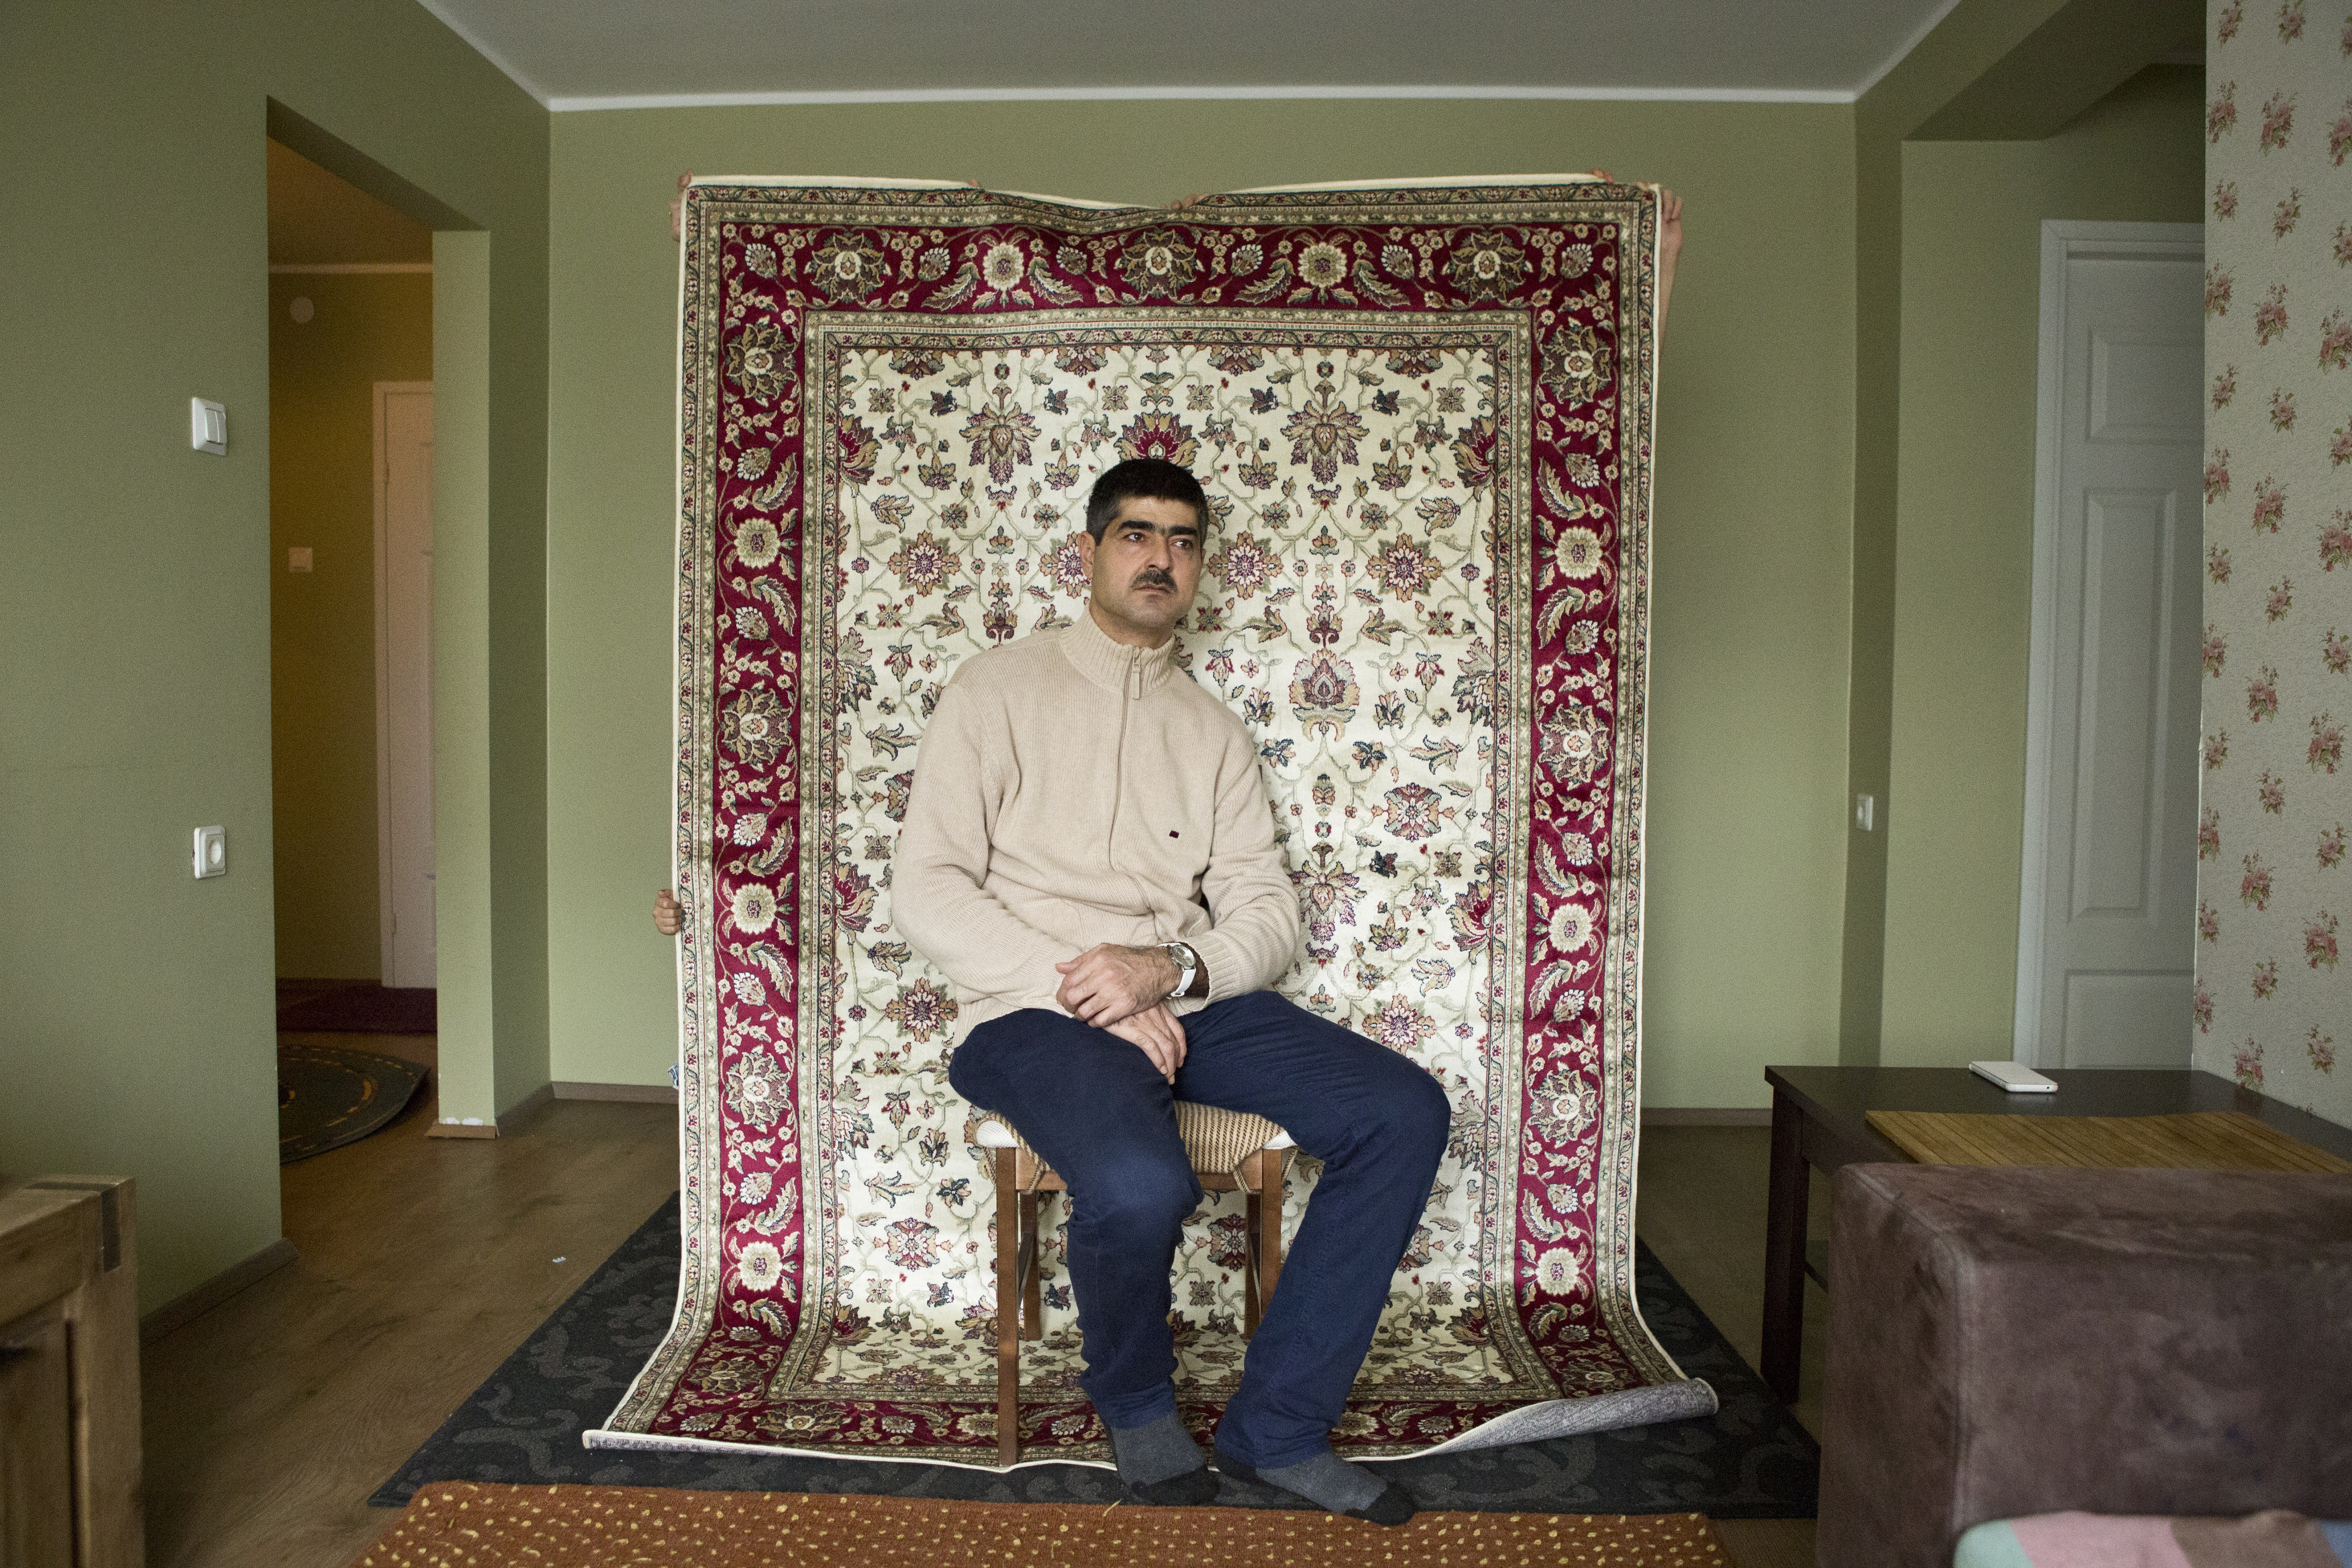 The family appreciates the interior décor characteristic of their homeland. Patterned carpets are their favourites.